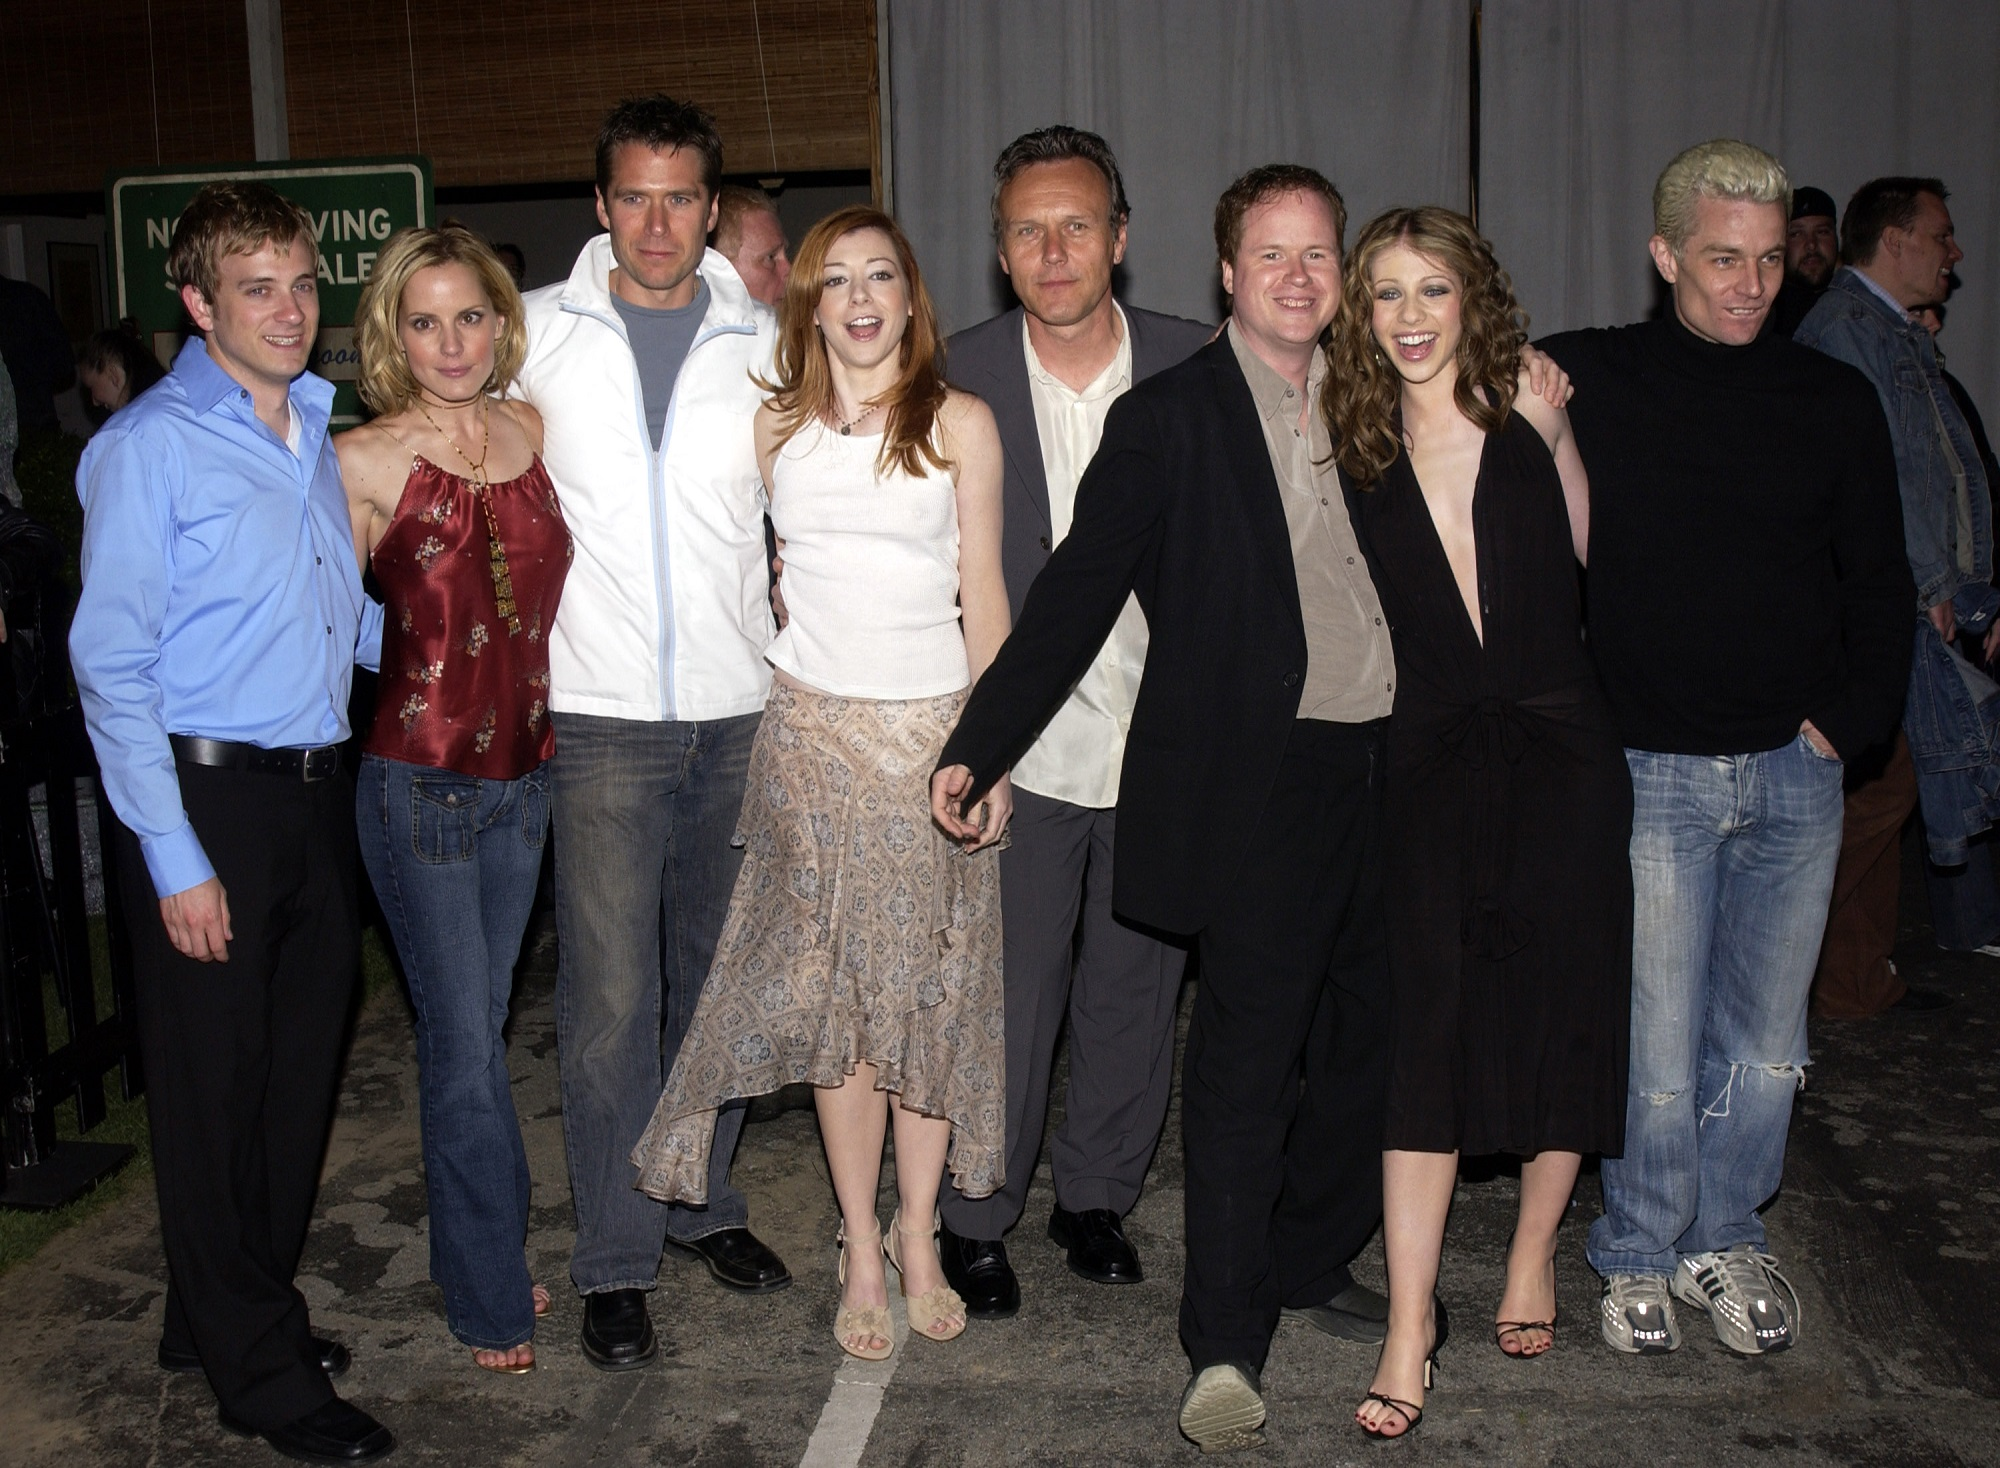 Tom Lenk, Emma Caulfield, Alexis Denisof, Alyson Hannigan, Anthony Stewart Head, Joss Whedon, Michelle Trachtenberg, and James Marsters of Buffy the Vampire Slayer